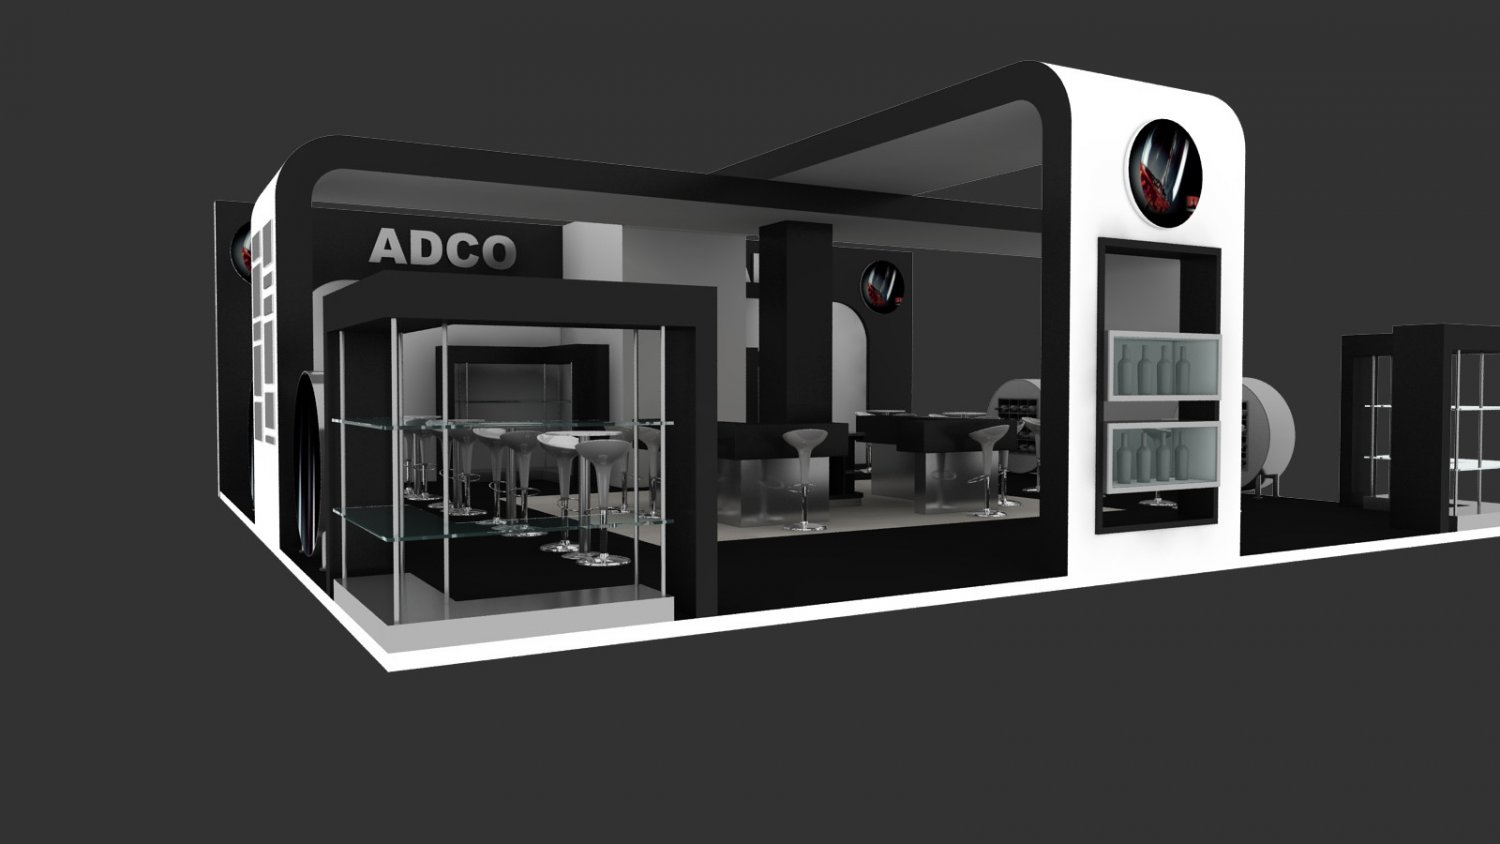 Exhibition Stand 3d Model Free : Adco exhibition stand design adco d model in exhibit dexport